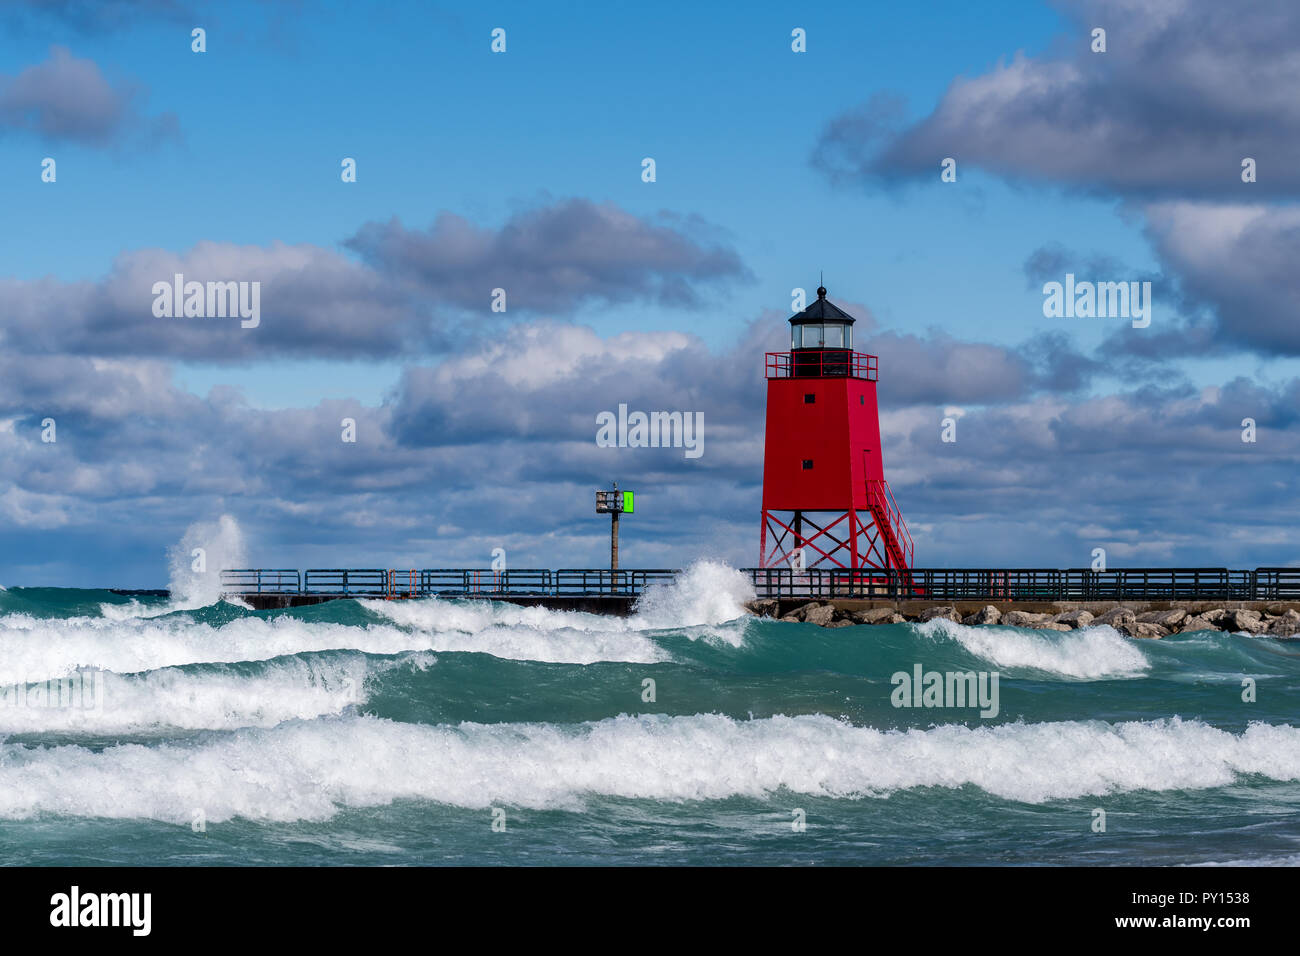 Large waves breaking in front of the Charlevoix South Pier lighthouse in Charlevoix, Michigan, USA. - Stock Image